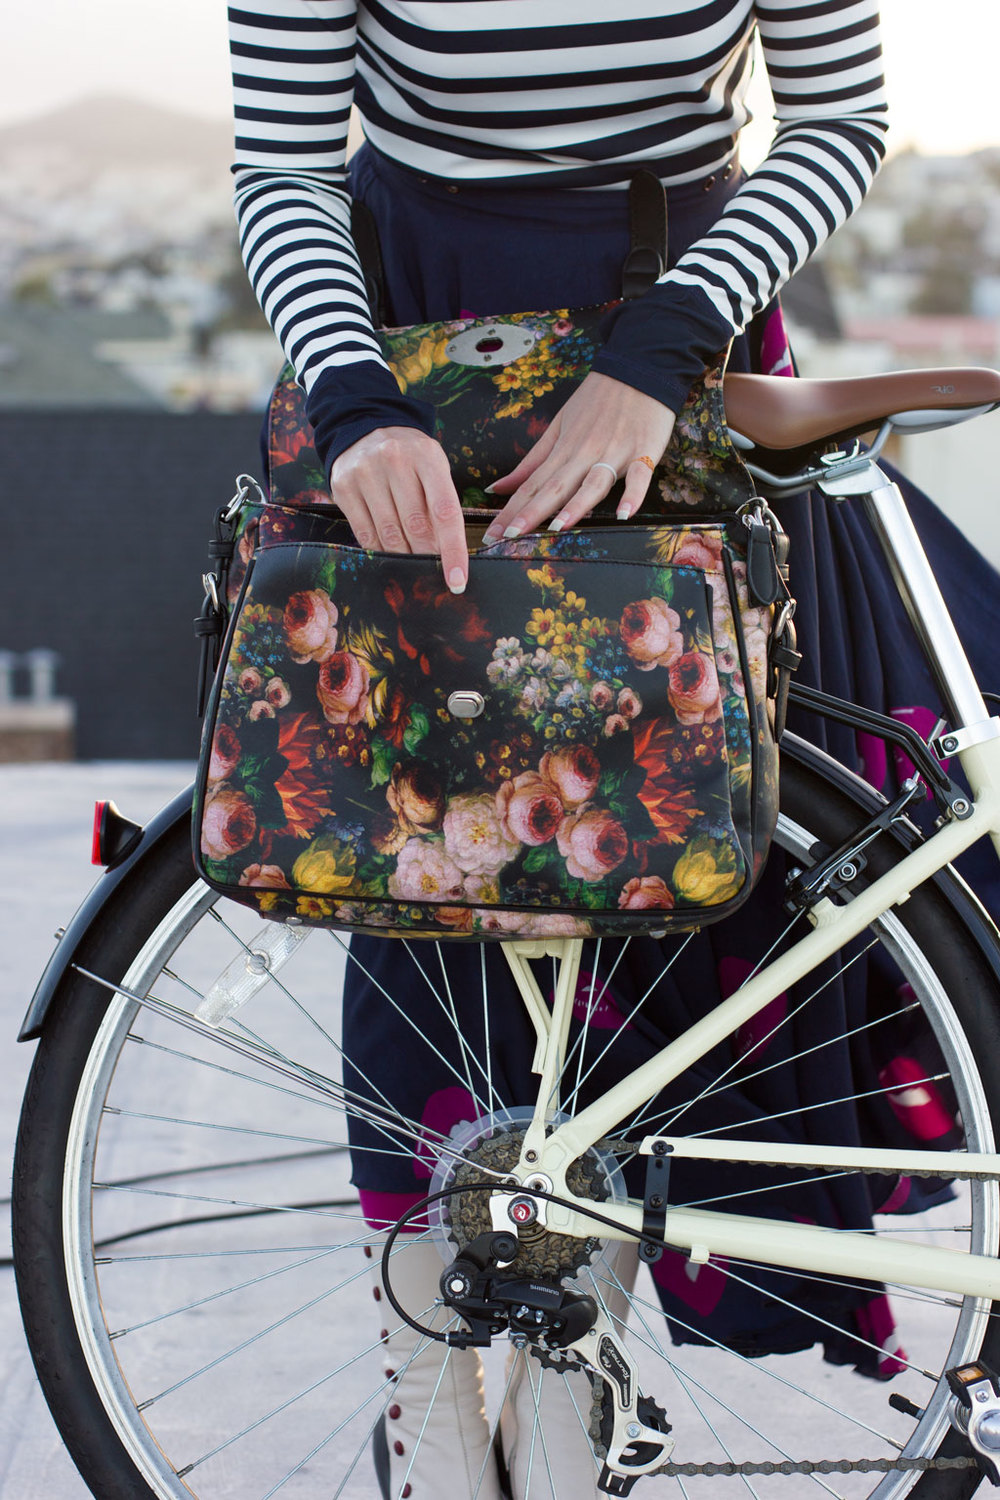 Special-Flower-Bike-Bag-On-Bike-3.jpg